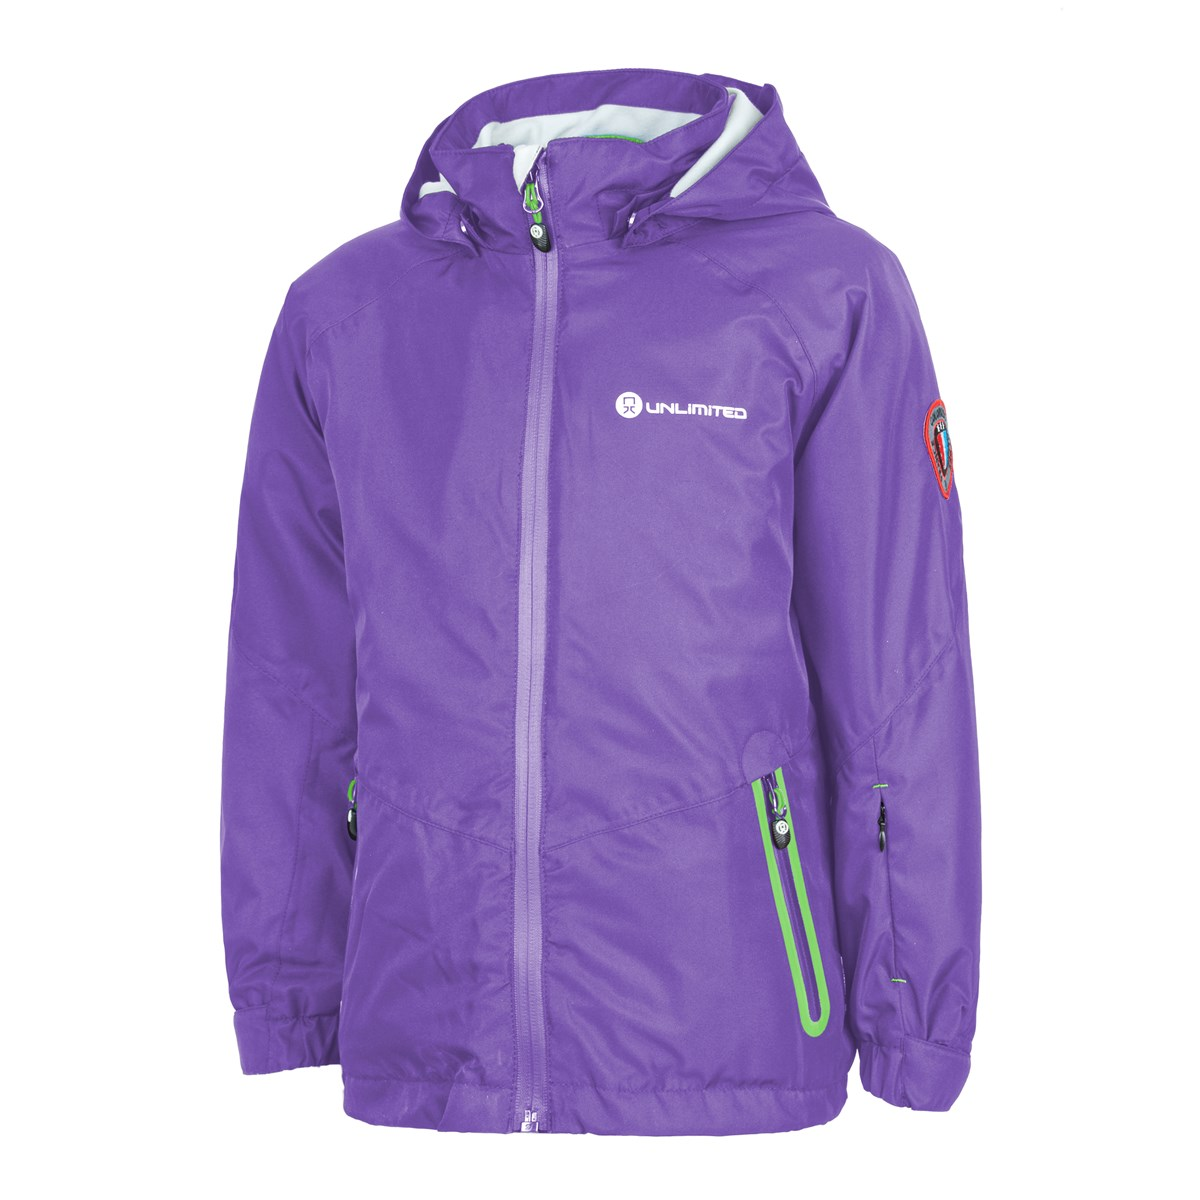 7ff9c57c2 Color Kids Tennesee Girls 3-in-1 Ski Jacket Heliotrope. 0 (Be the first to  add a review!)